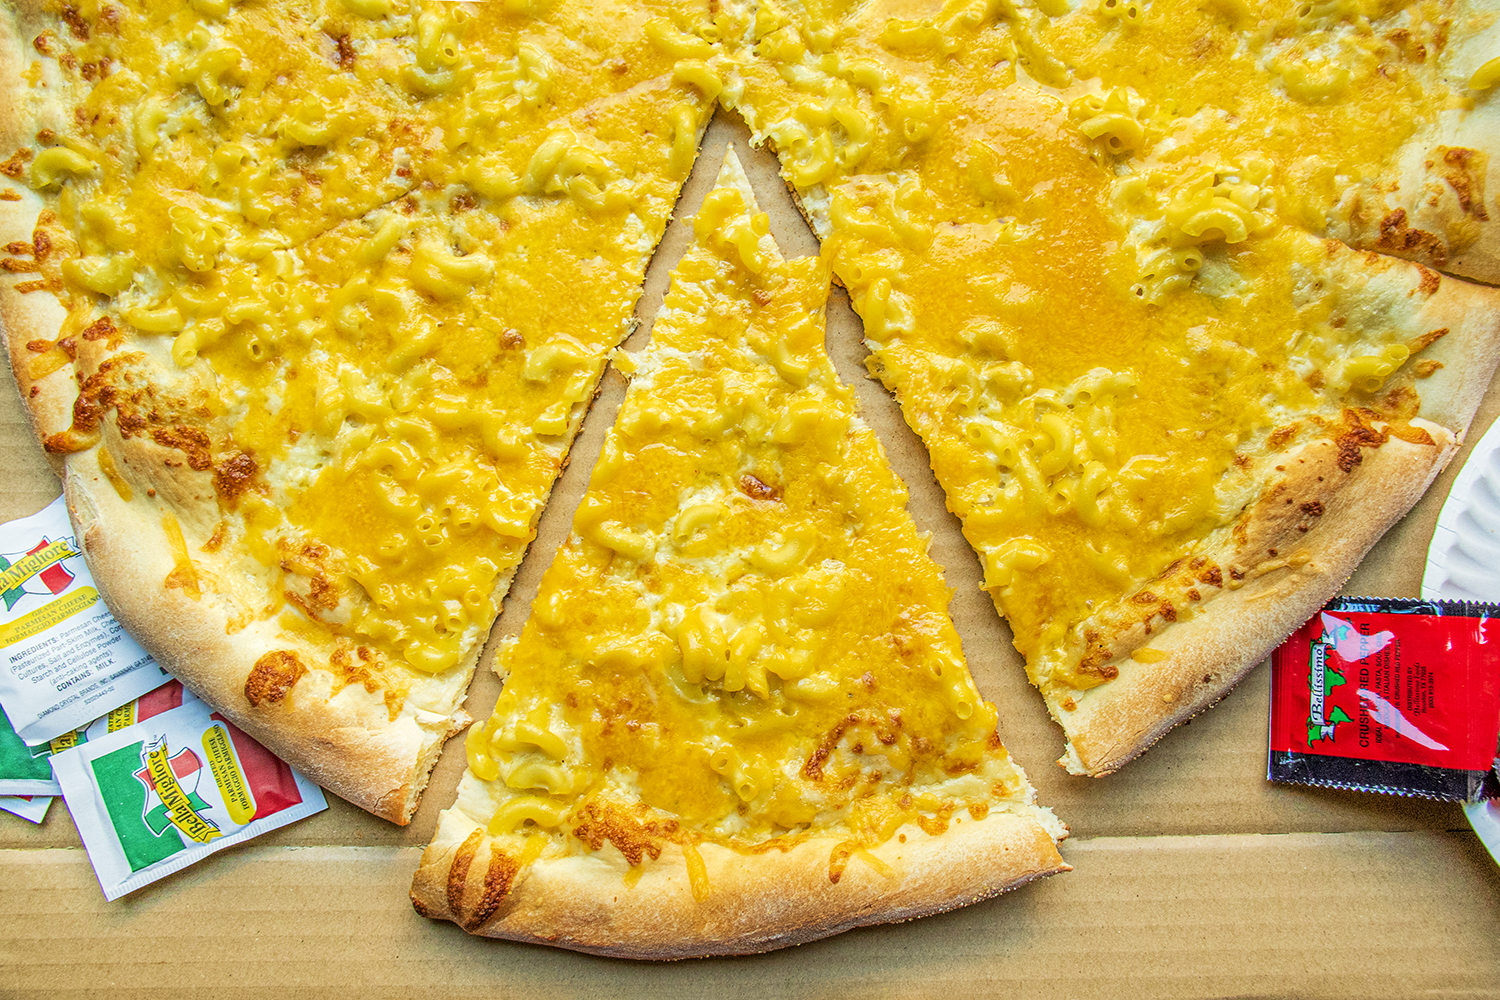 From late-night parties to conference rooms, Ian's Pizza is a popular spot for cheesy, XL pies and pizza-by-the-slice. Known for unusual toppings and quality local ingredients, their best-seller Mac n' Cheese pizza is always a crowd-pleaser.{ }(Image: Rachael Jones / Seattle Refined)